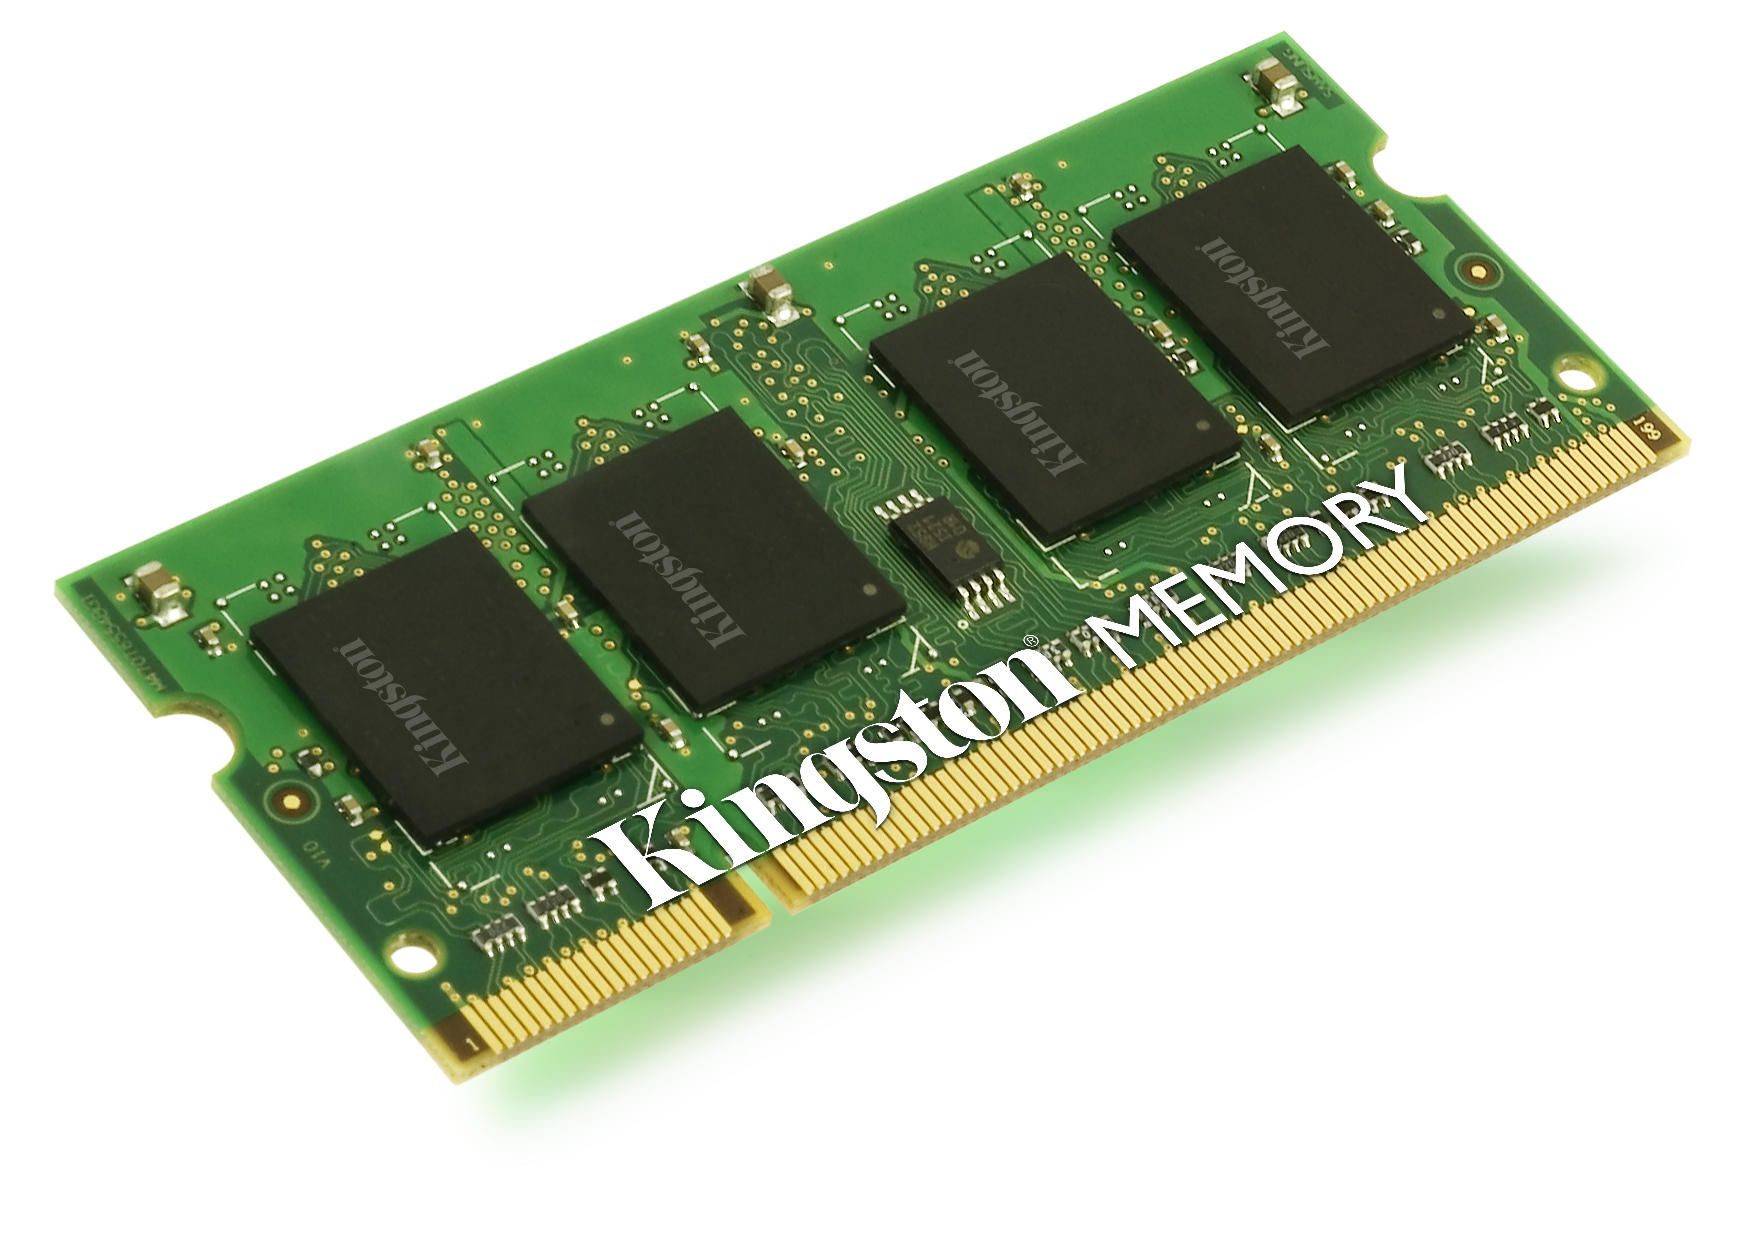 Kingston KACMEMG-2G, 2GB 800MHz SODIMM for Acer, oem partnr.: N-A